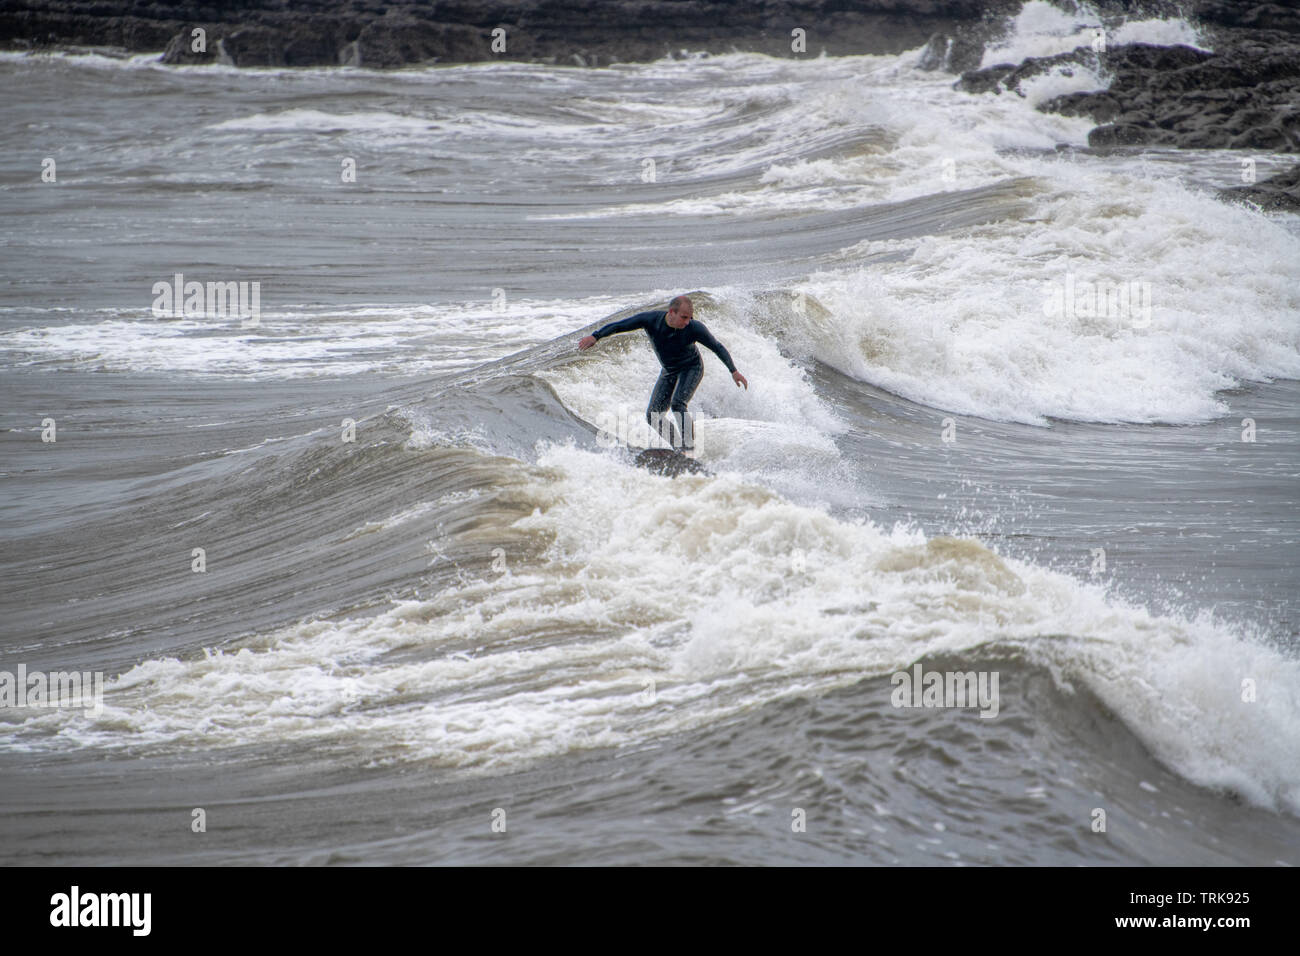 A middle-aged surfer in wet suits hols his balance in tricky water. Rest Bay Porthcawl, UK. - Stock Image